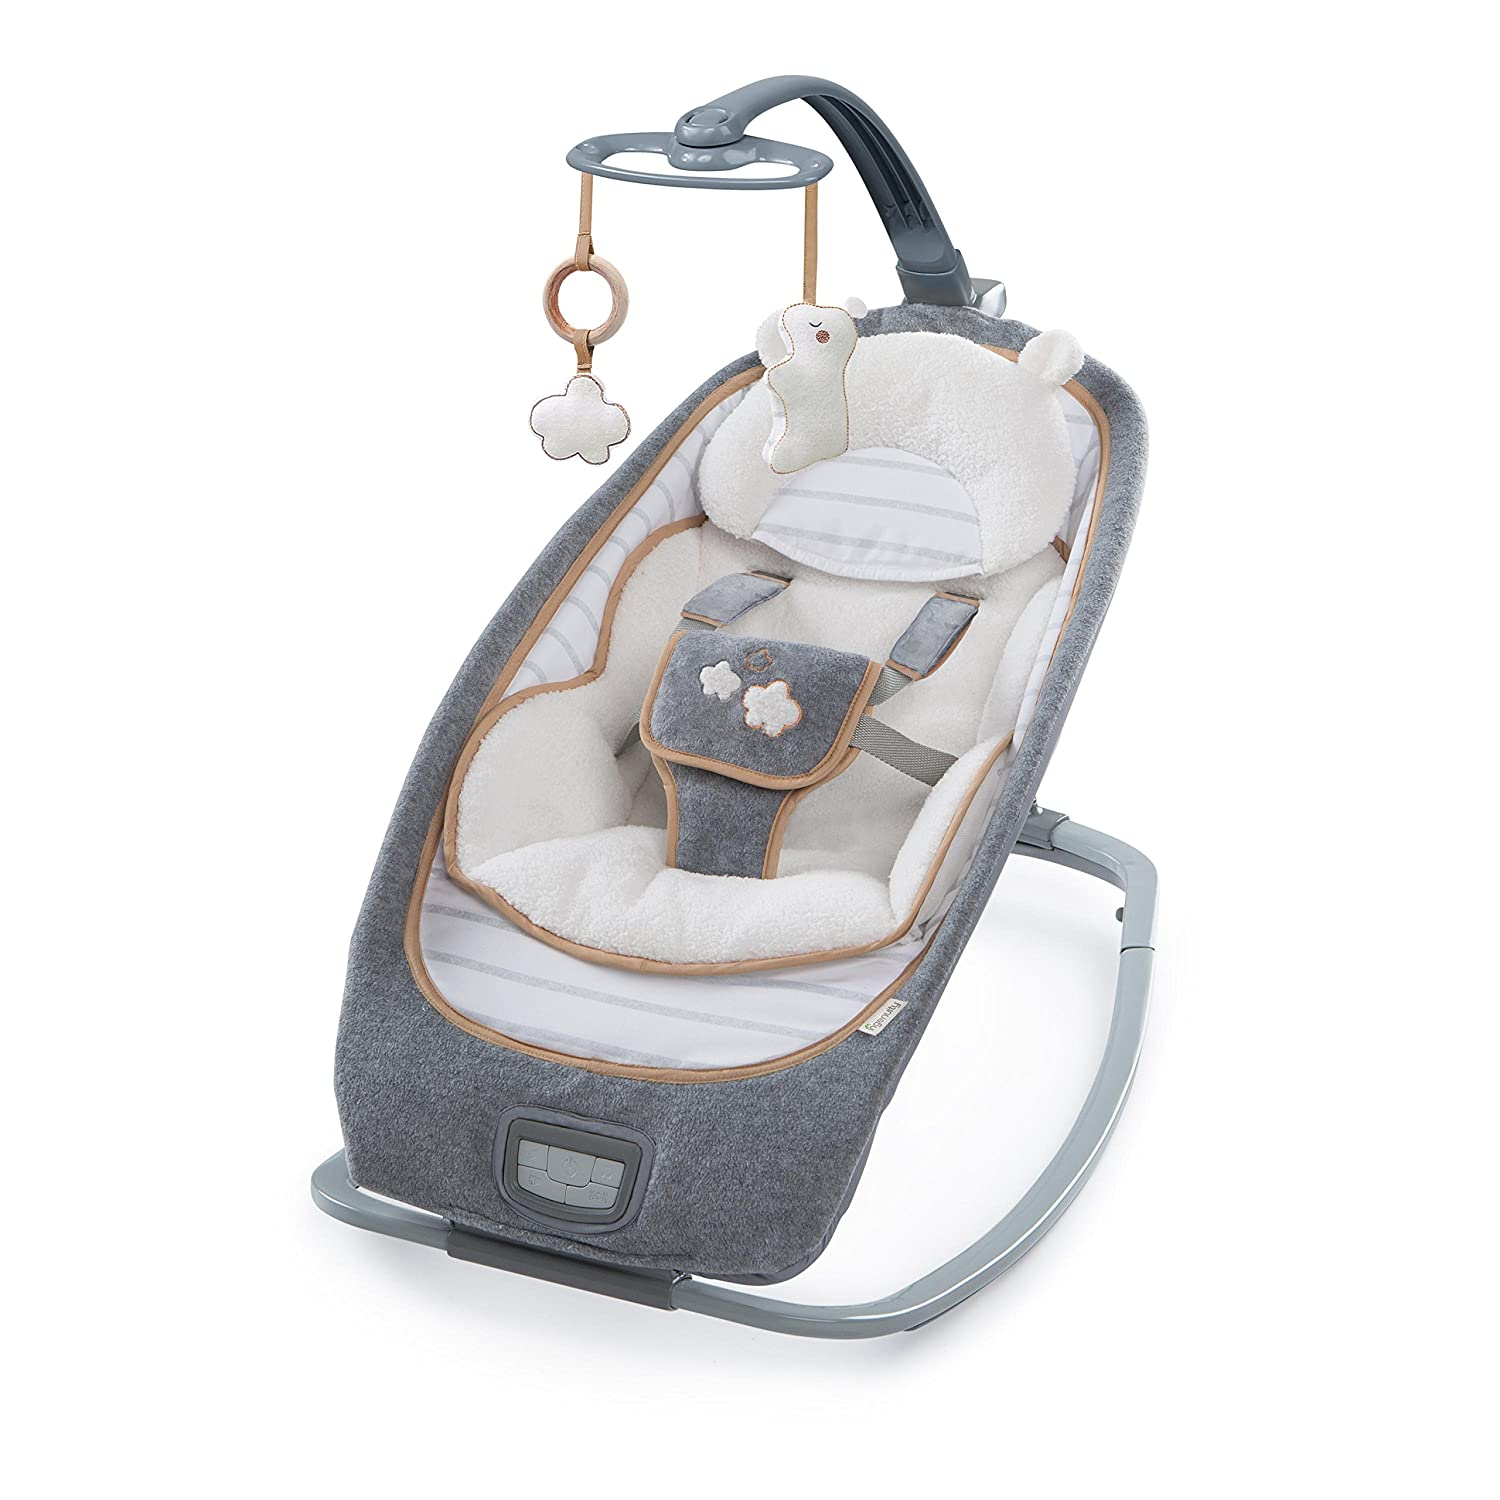 Ingenuity Boutique Collection Rocking Seat - Bella Teddy Kids II 10986-3-W11